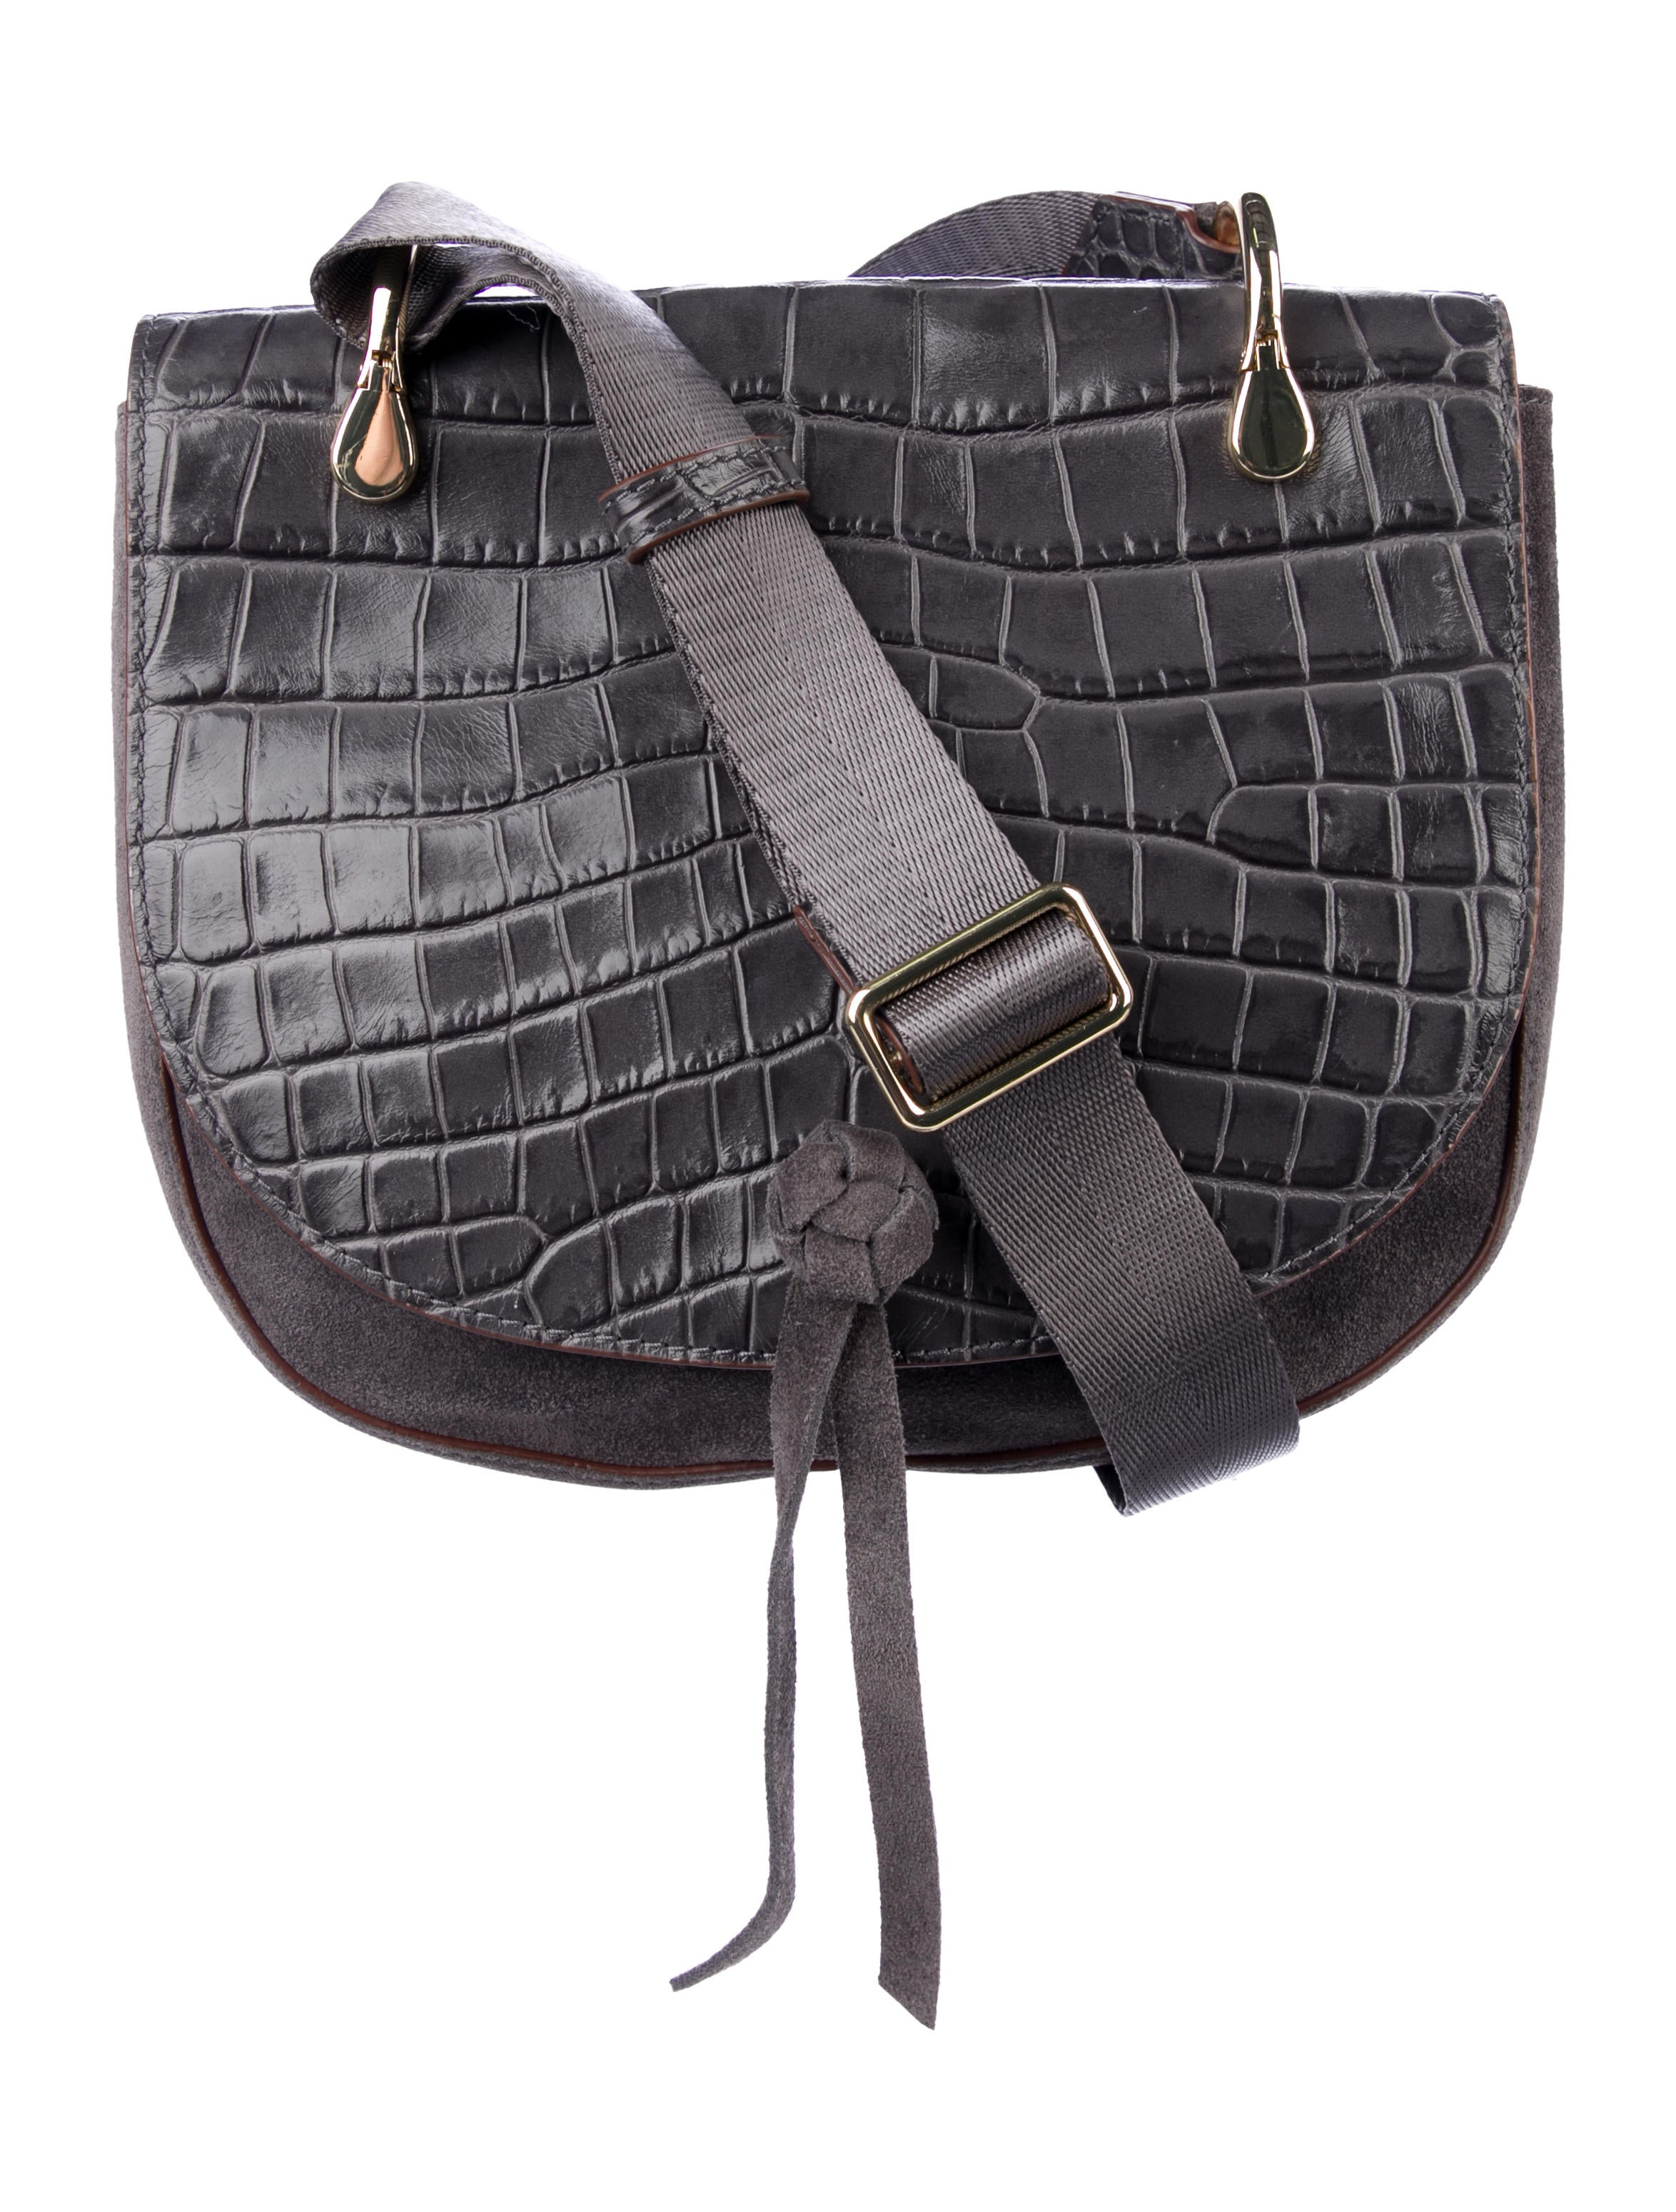 08f0a76094 Elizabeth and James Zoe Saddle Bag - Handbags - WEI54210